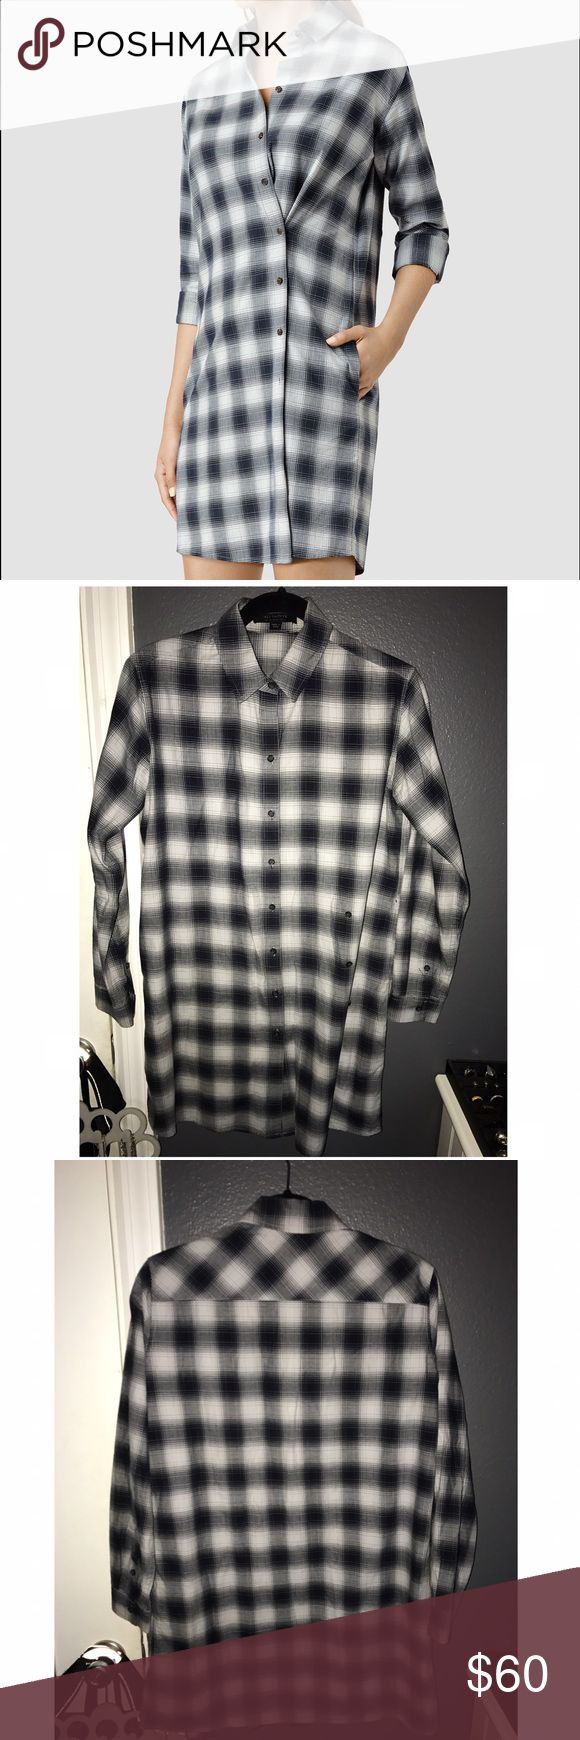 AllSaints Dress Flannel Dress. Size 6. Stain shown. AllSaints. Long sleeve. All Saints Dresses Mini